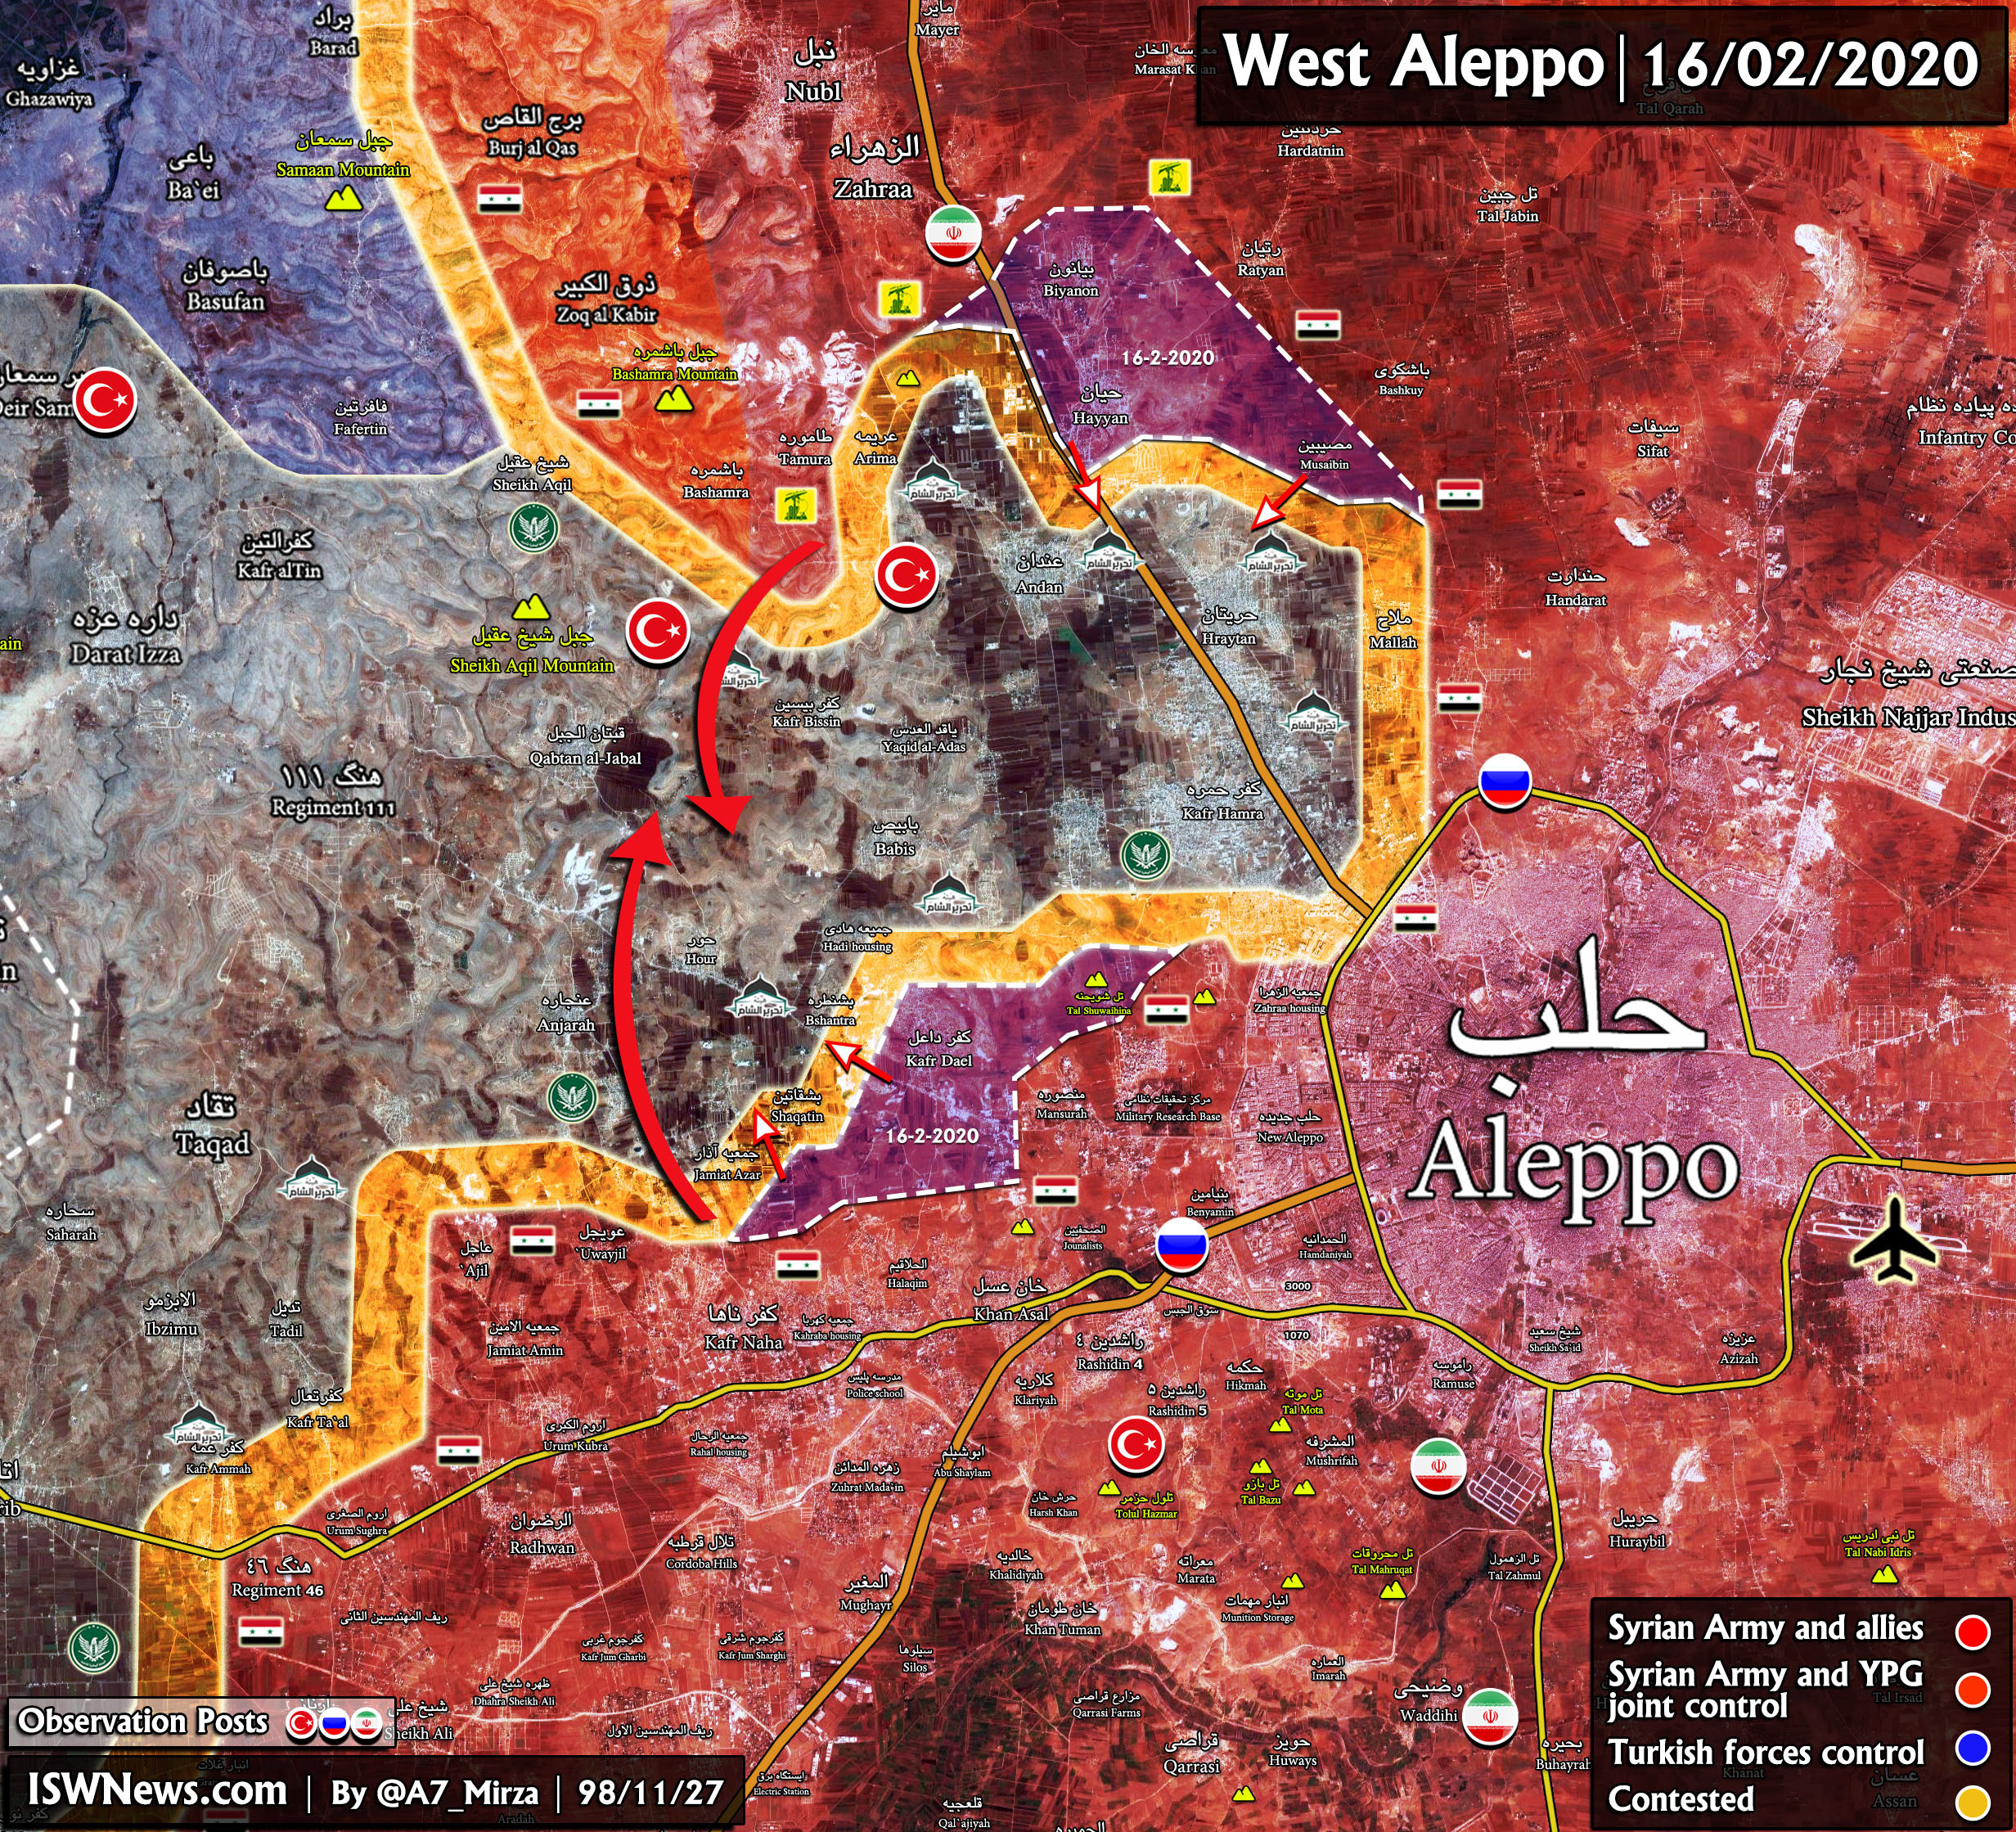 Northern-Idlib-Western-Aleppo-copy-2-2.j